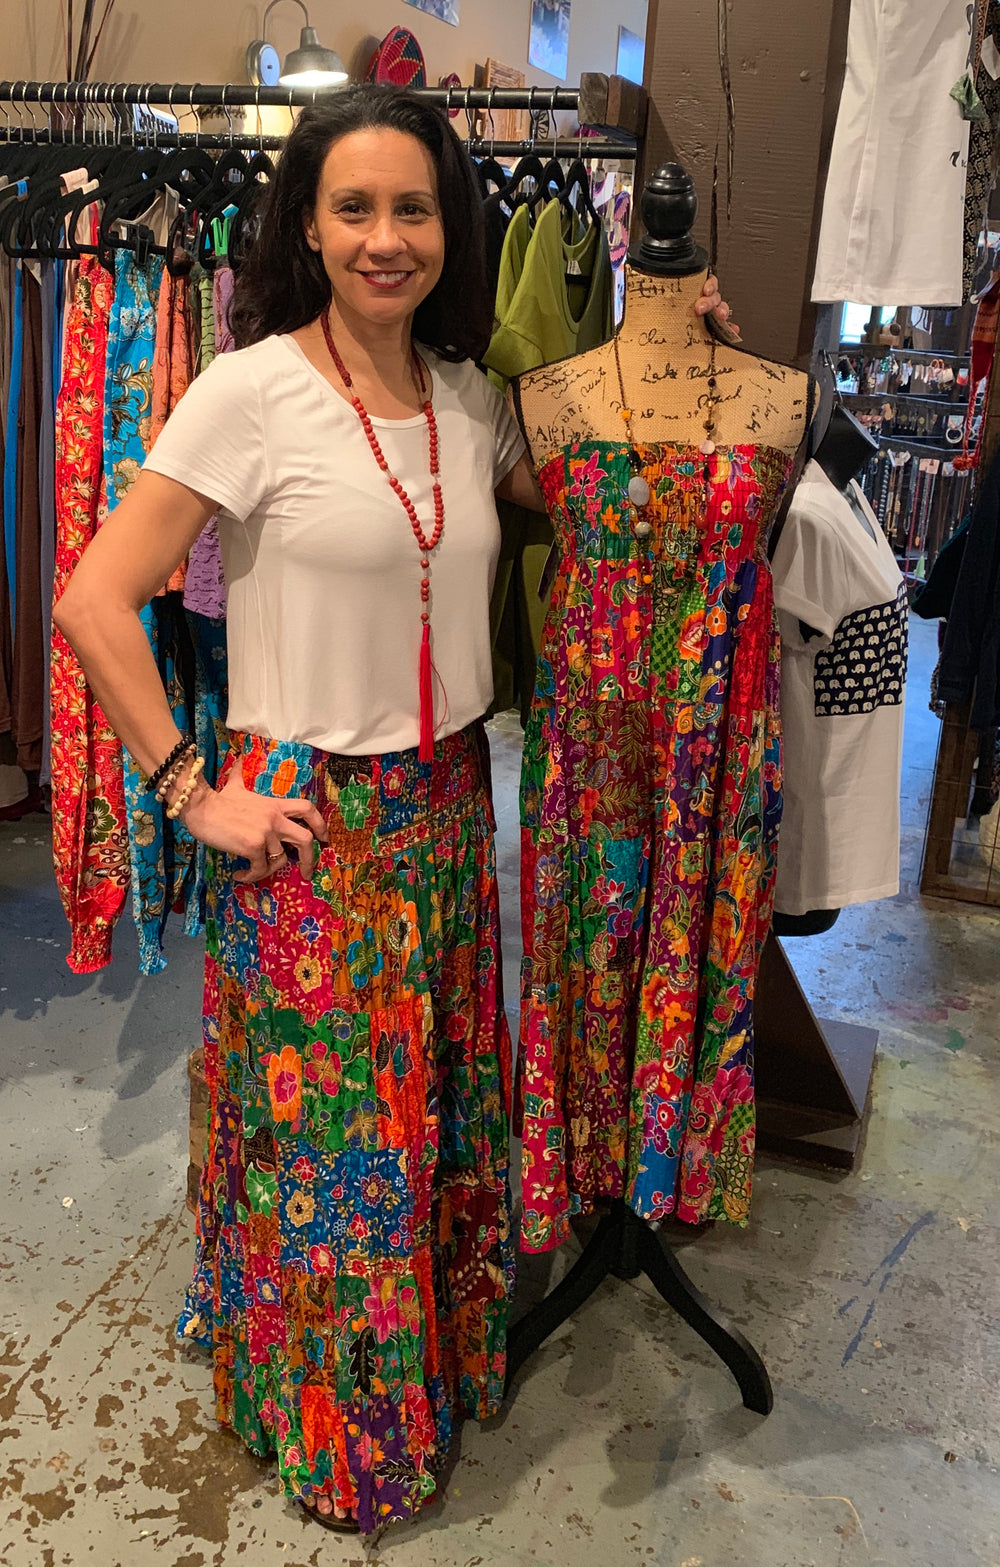 Twisted Patchwork Skirt by Samaritan Creations from Thailand